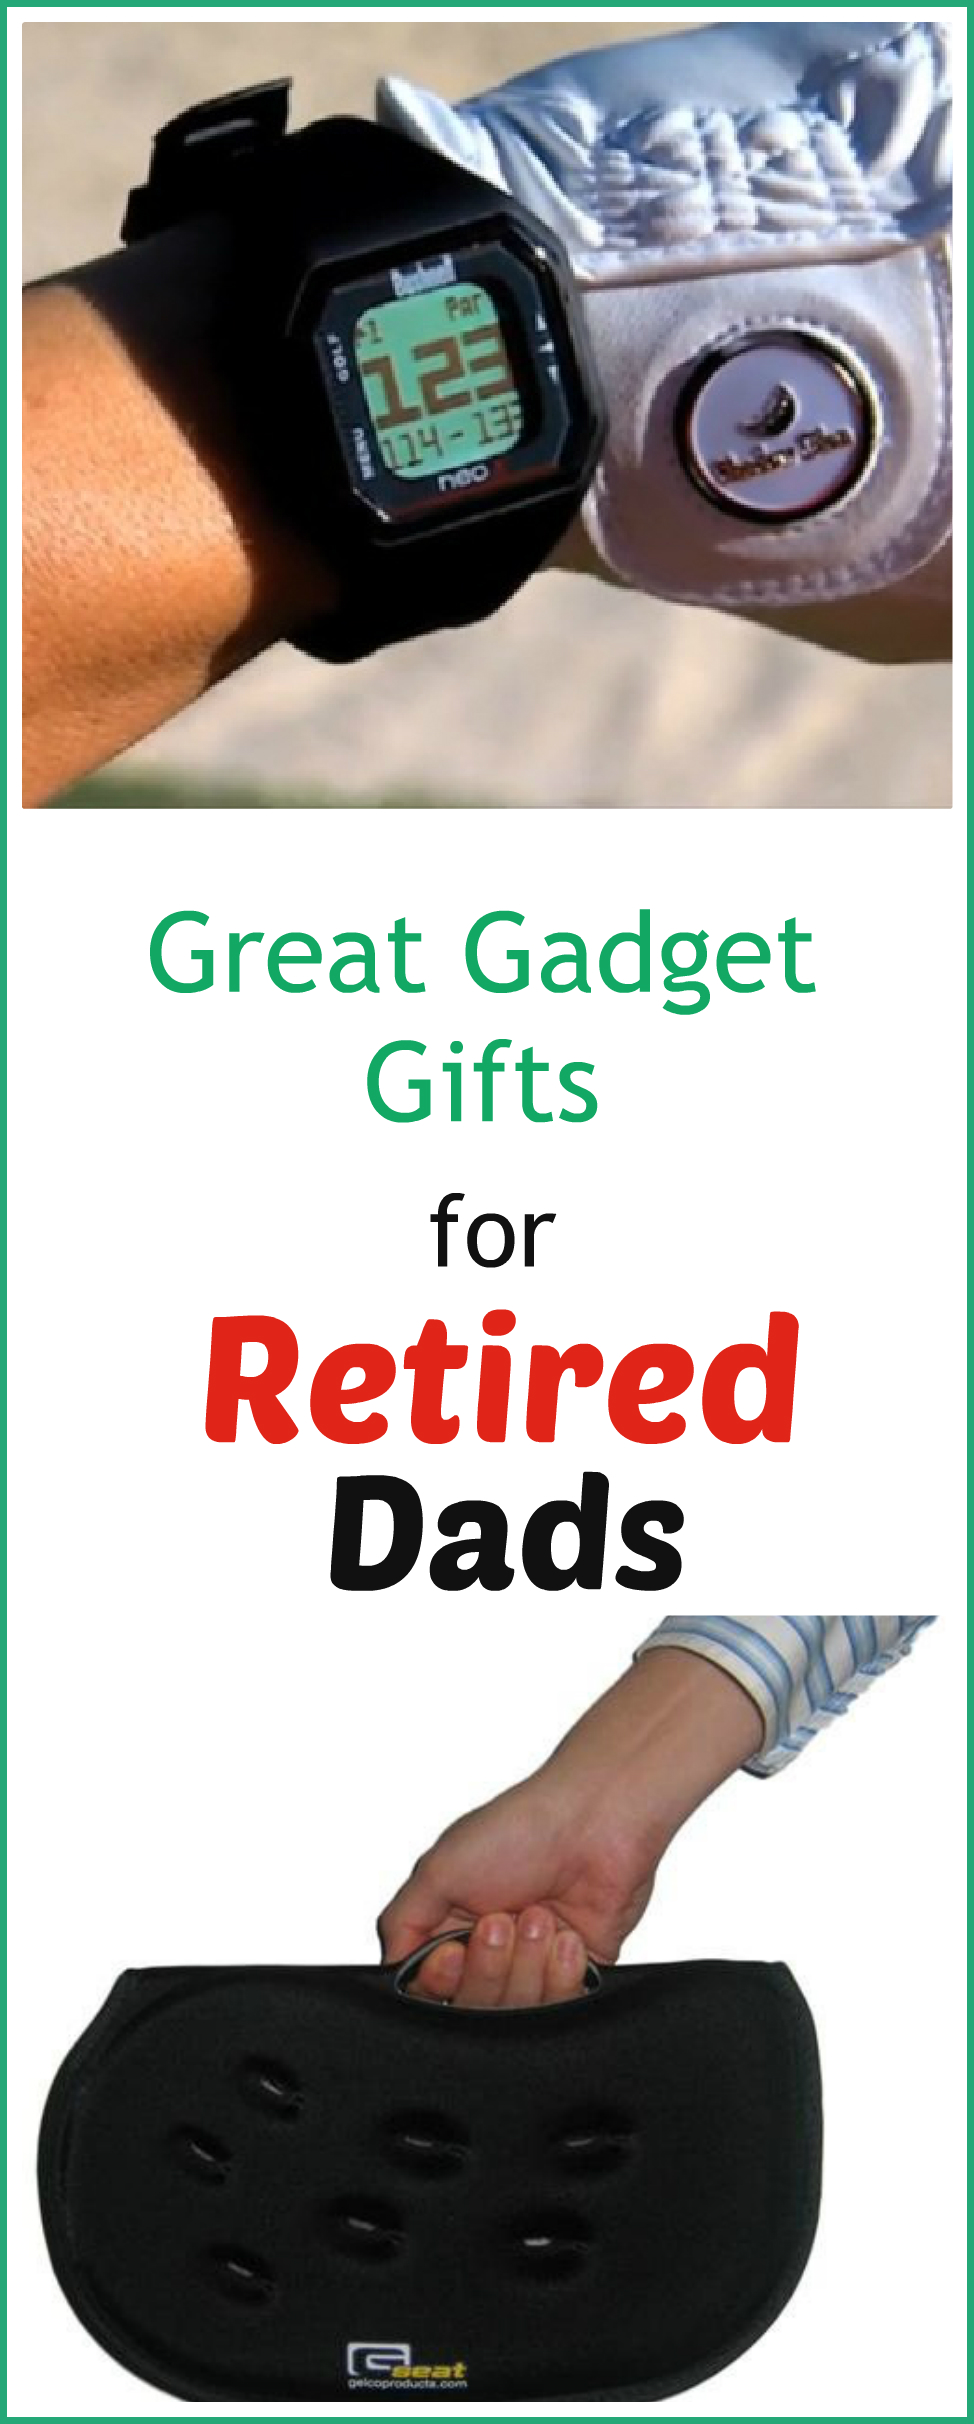 15+ Gadget Gifts For Retired Dads And Grandpas